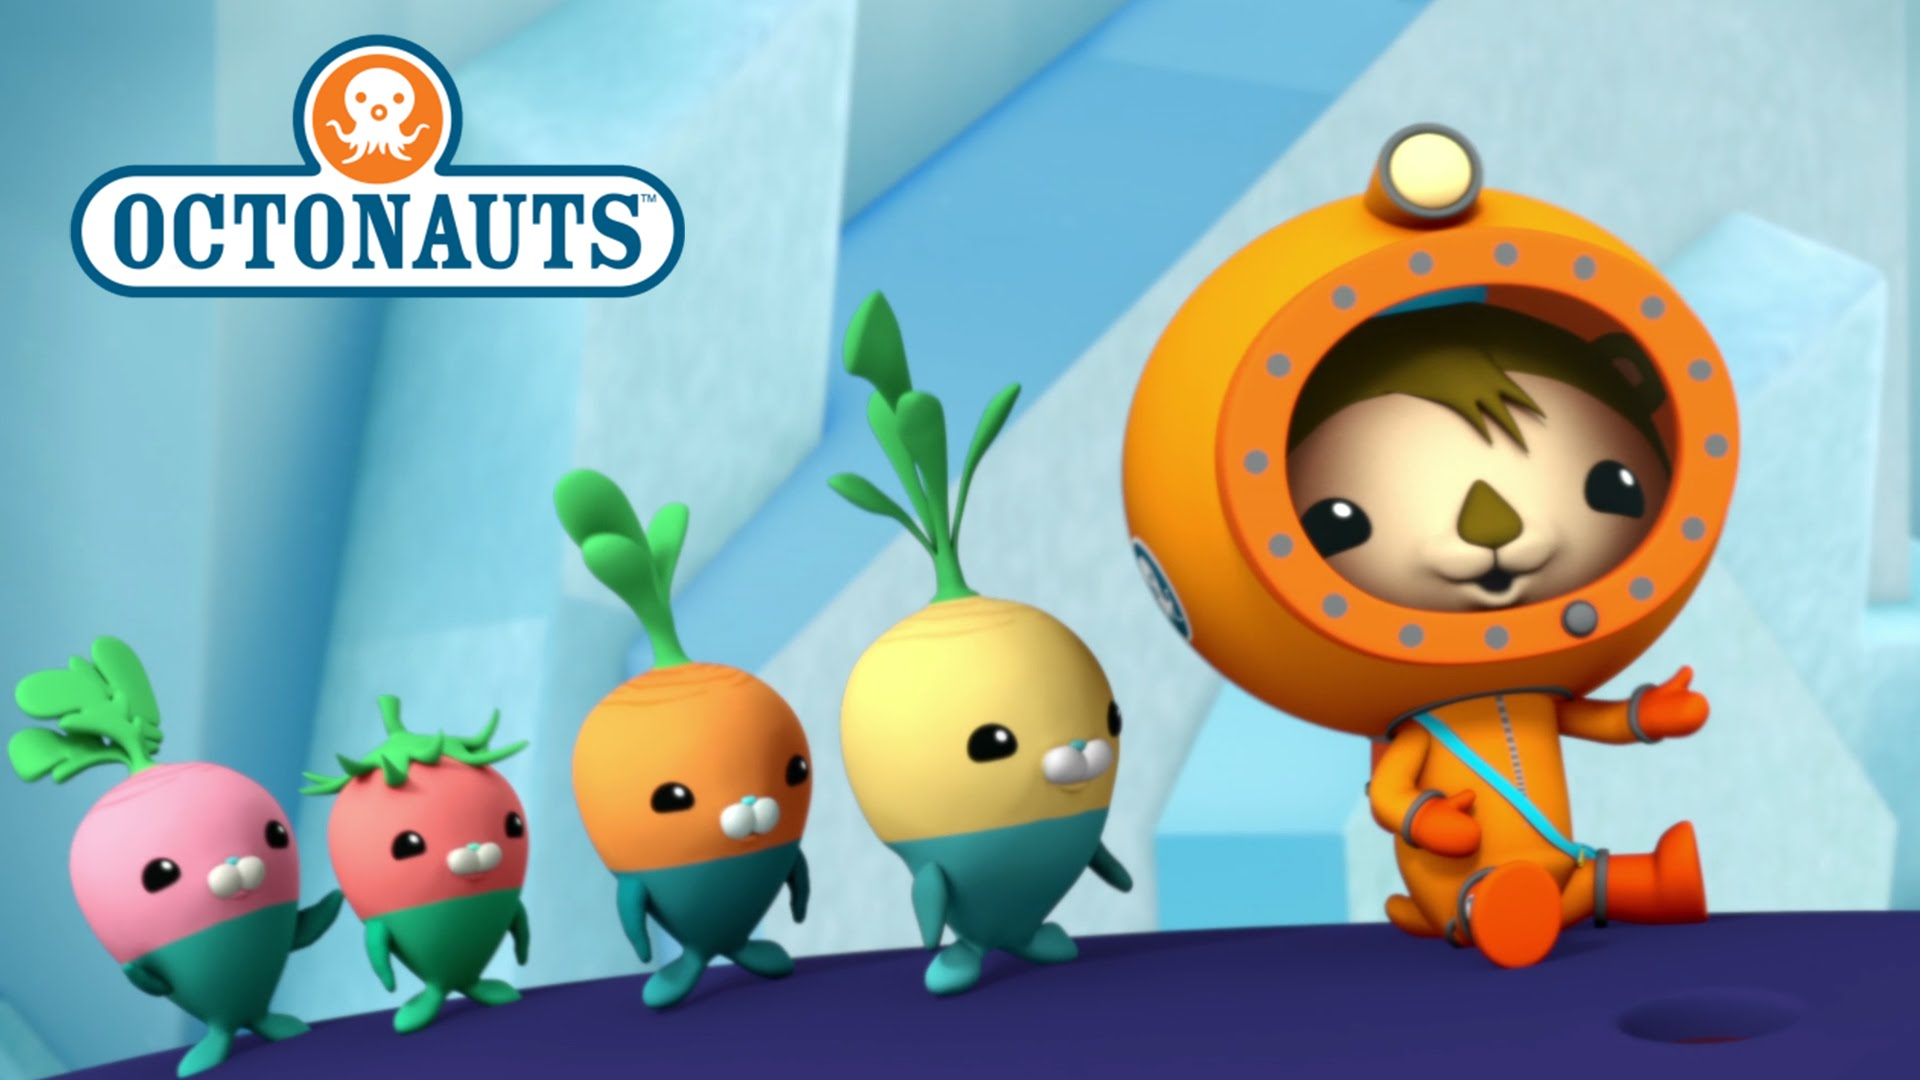 HQ Octonauts Wallpapers | File 137.13Kb